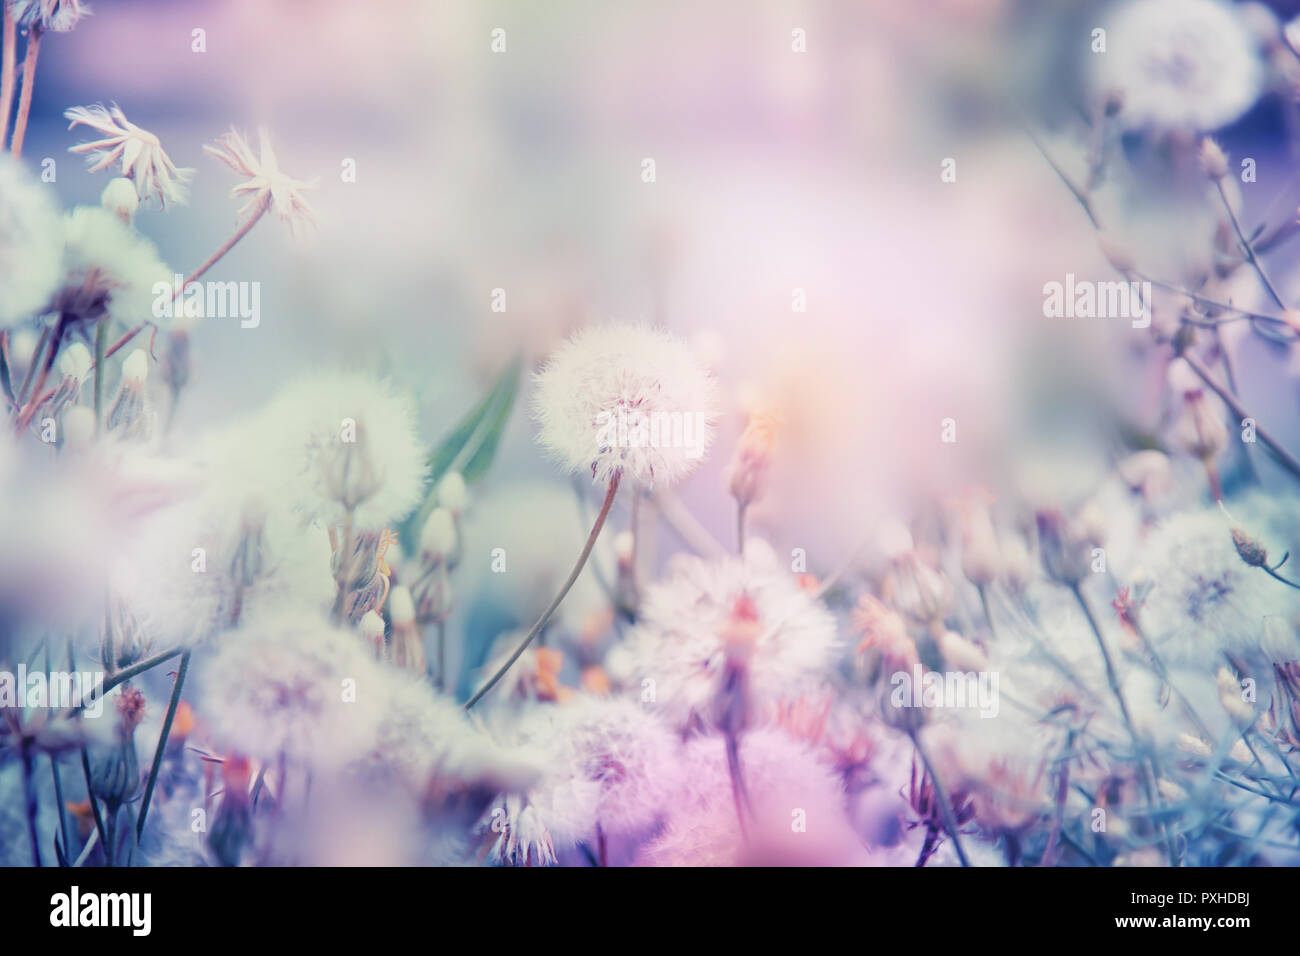 Beautiful Floral Background With Dandelion Flowers In Summer Pastel